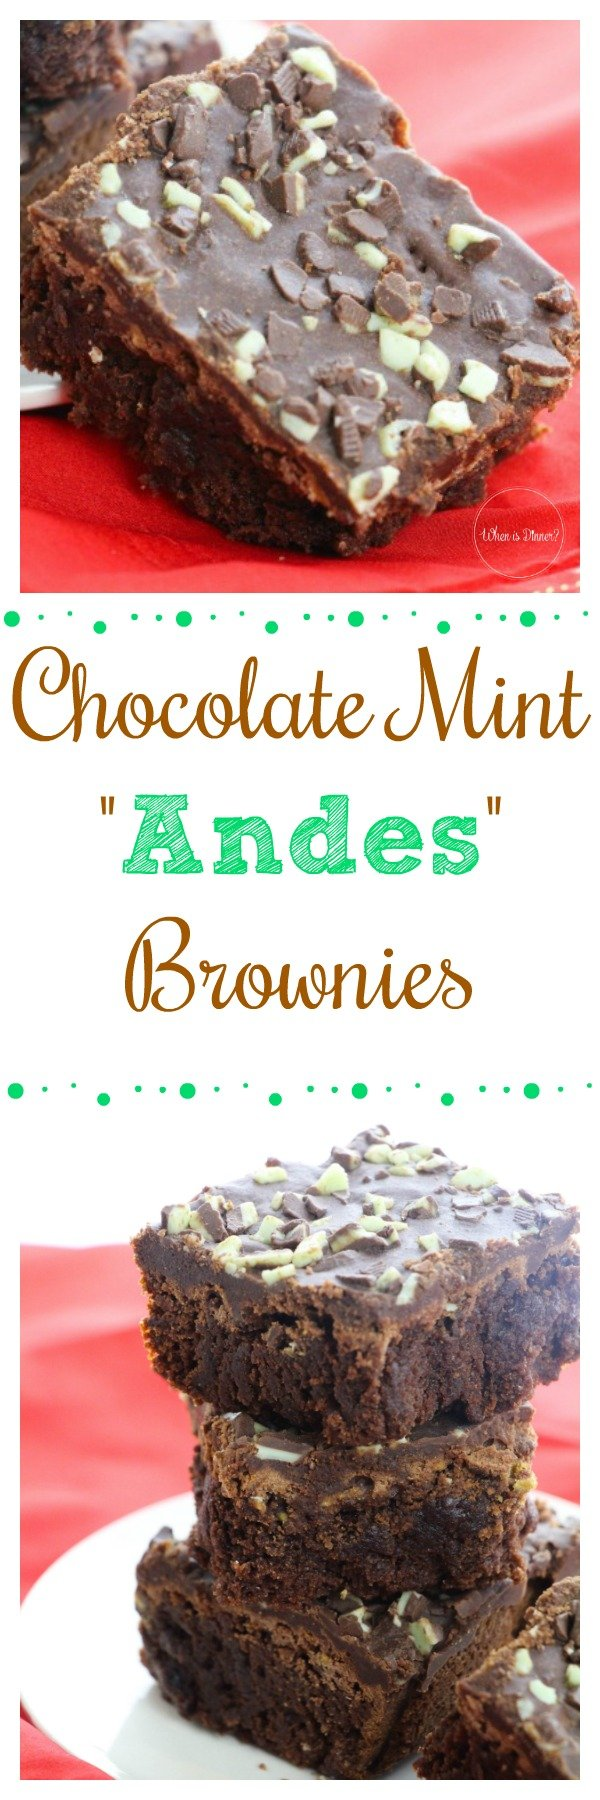 These Chocolate Mint Brownies are full of fudgy deliciousness. Topped with Chocolate Ganache and Andes Mint Chocolate Candies, you won't want to miss trying these!